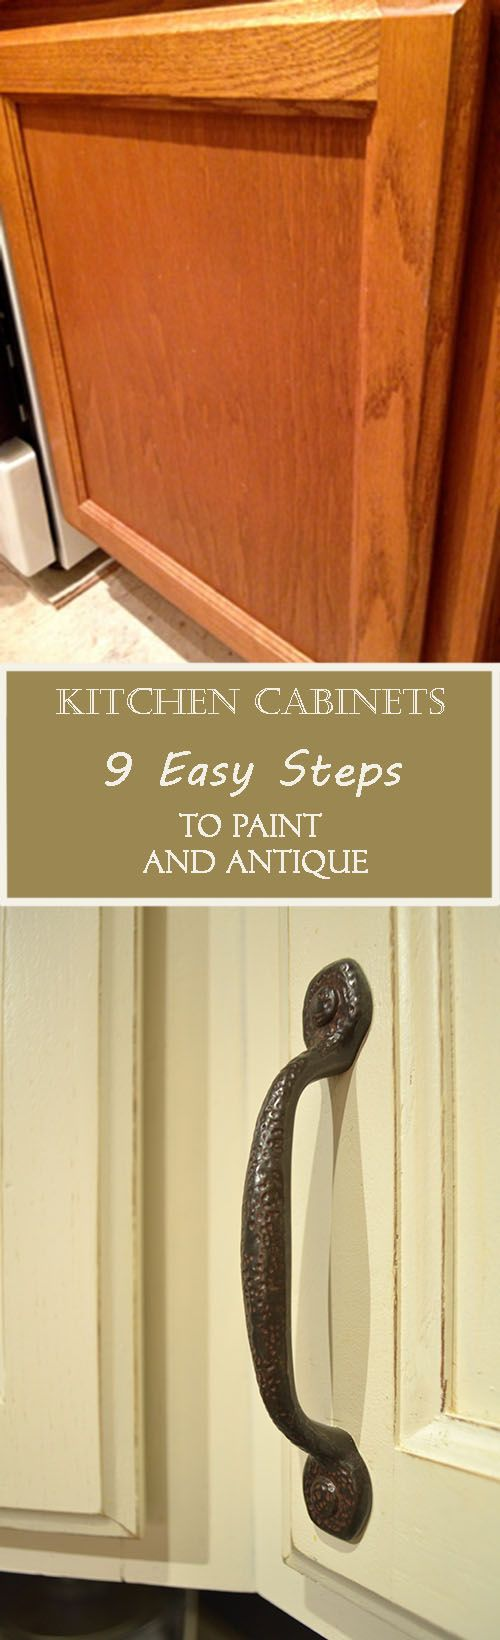 Paint your kitchen cabinets in 9 easy steps. Distress the cabinets for shabby look.